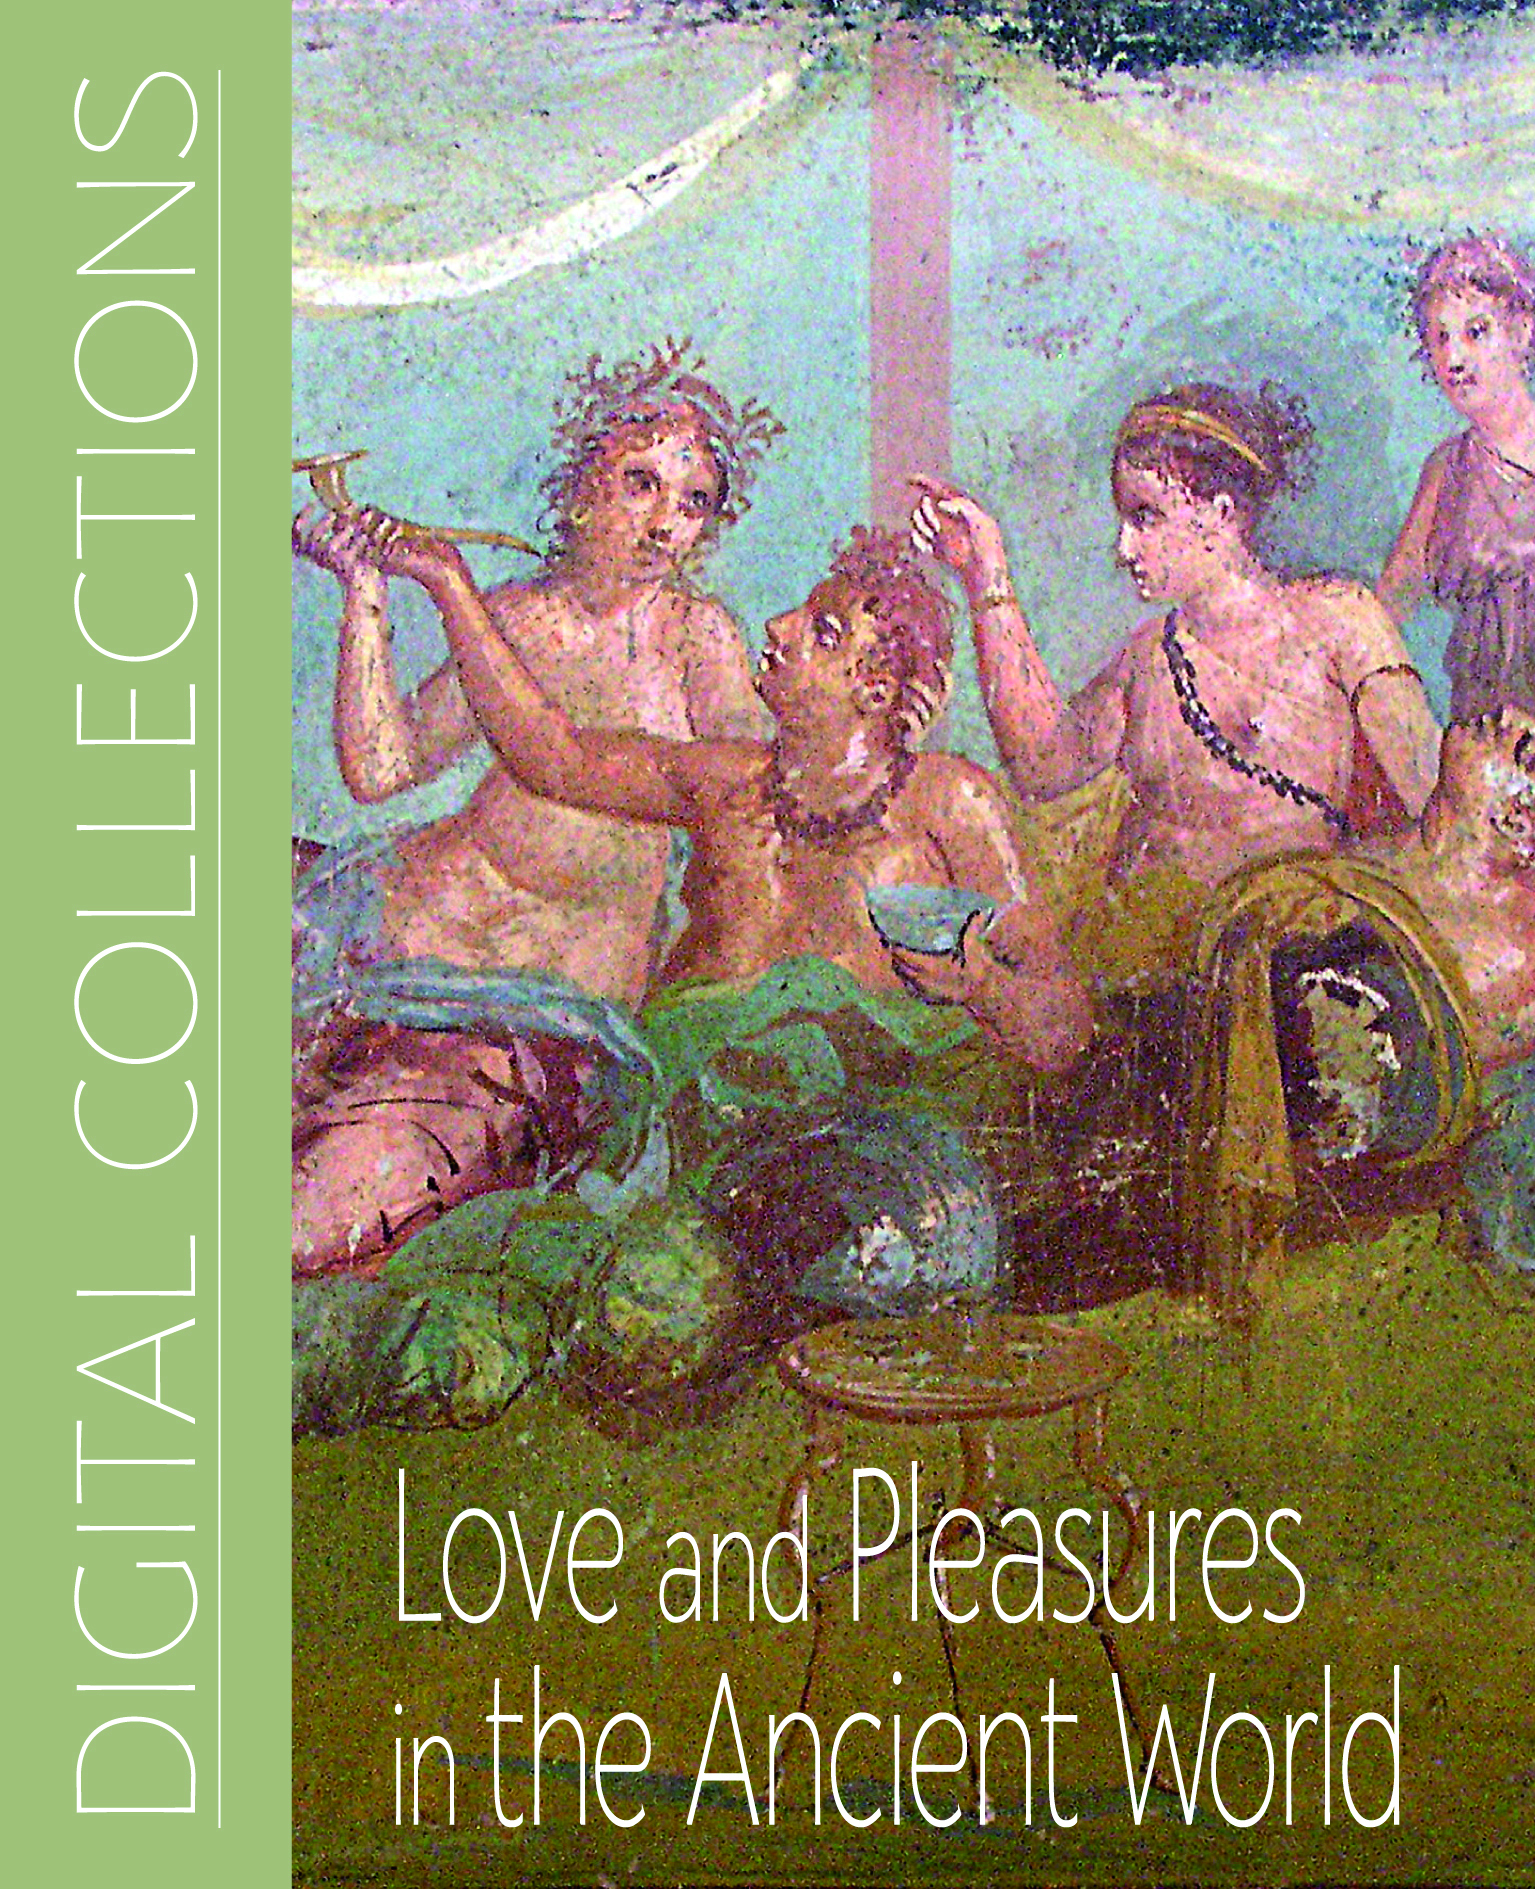 Love and Pleasures in the Ancient World